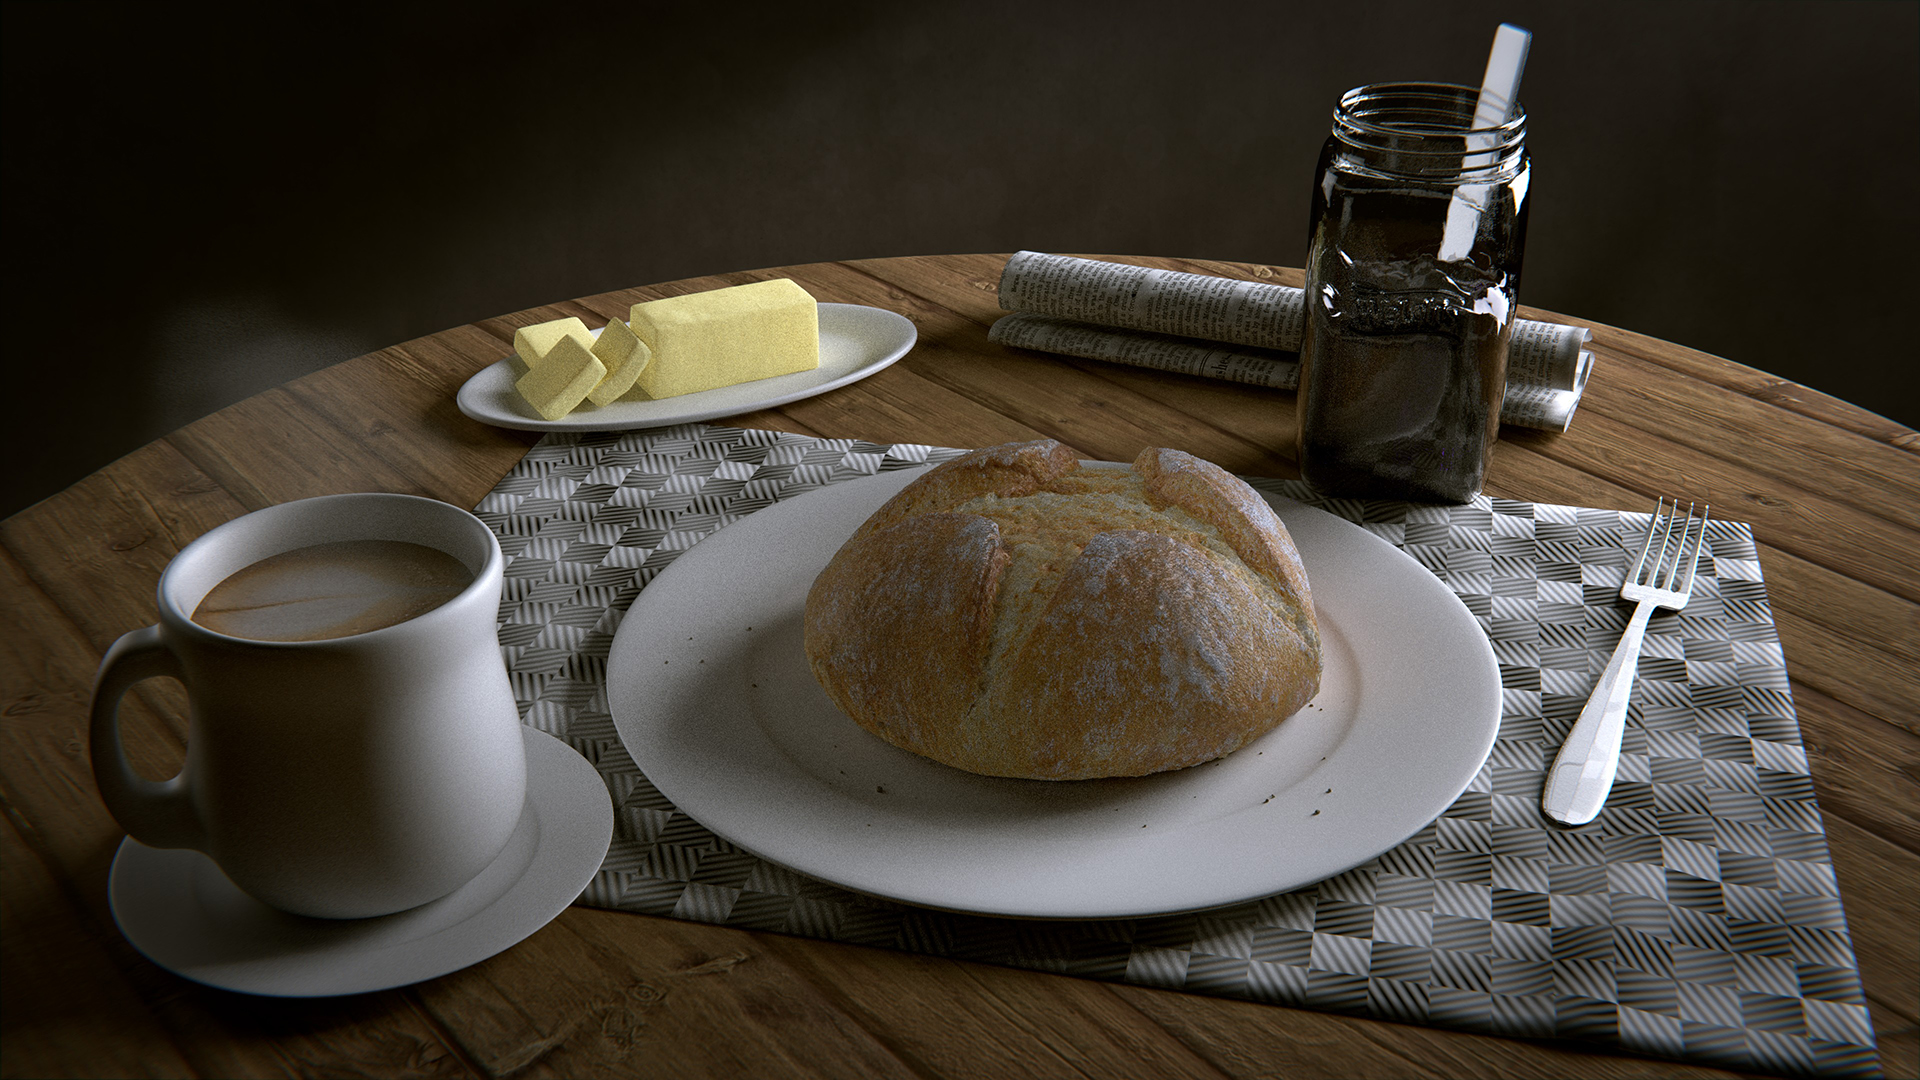 Bread, butter, and coffee